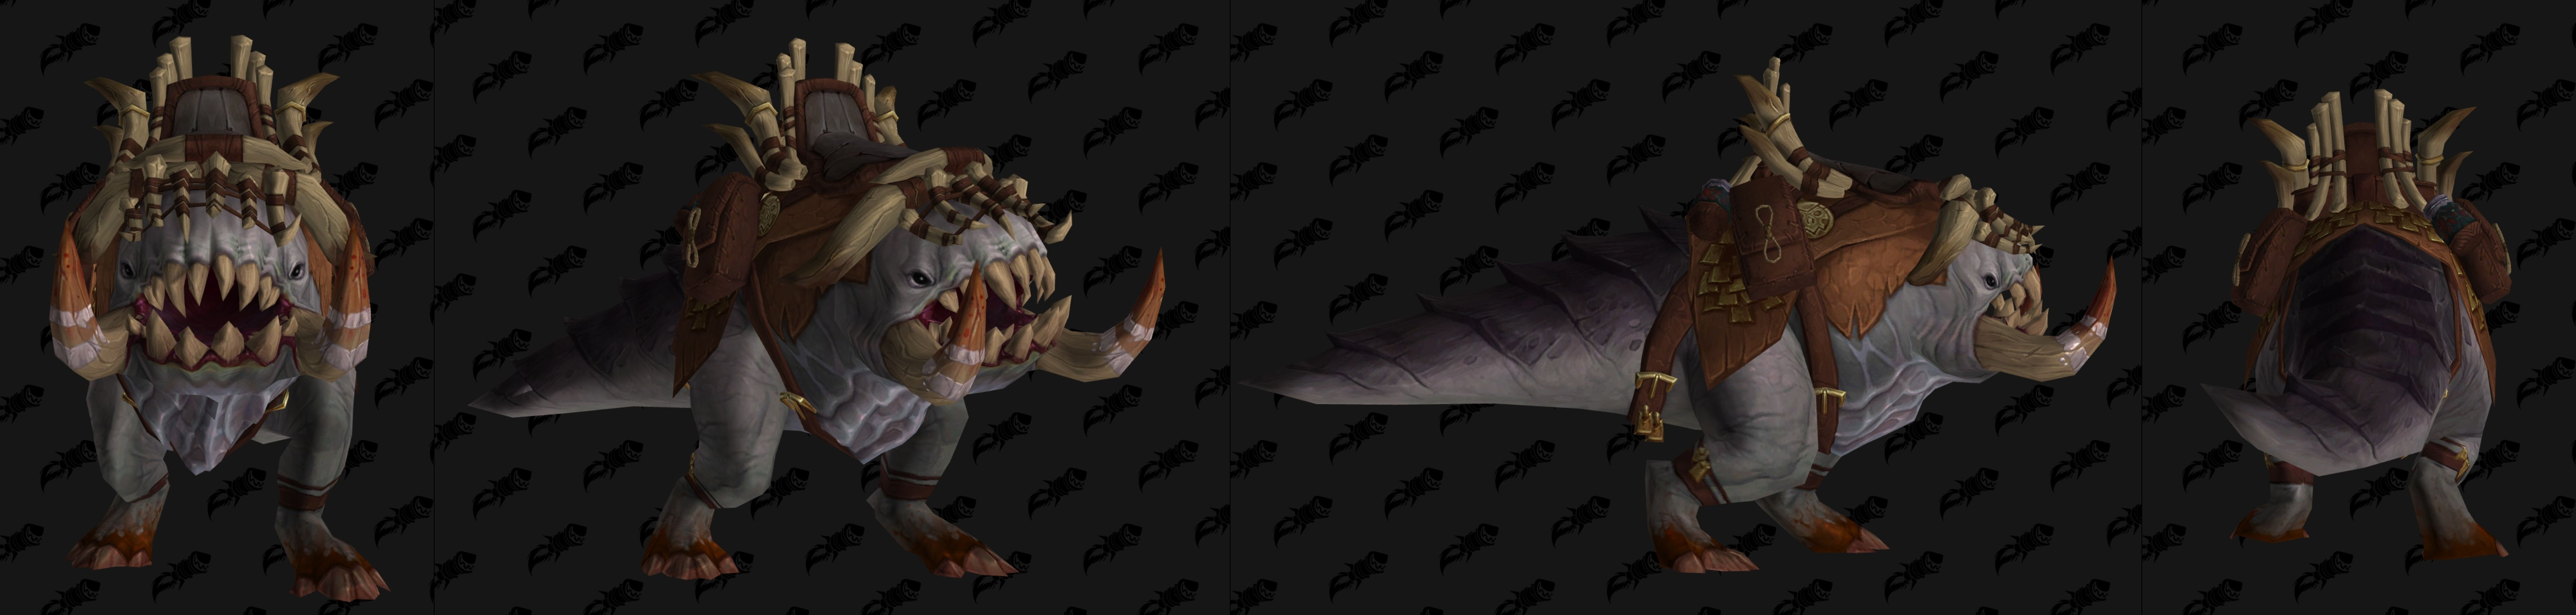 Battle for Azeroth Mount Models - Wowhead News